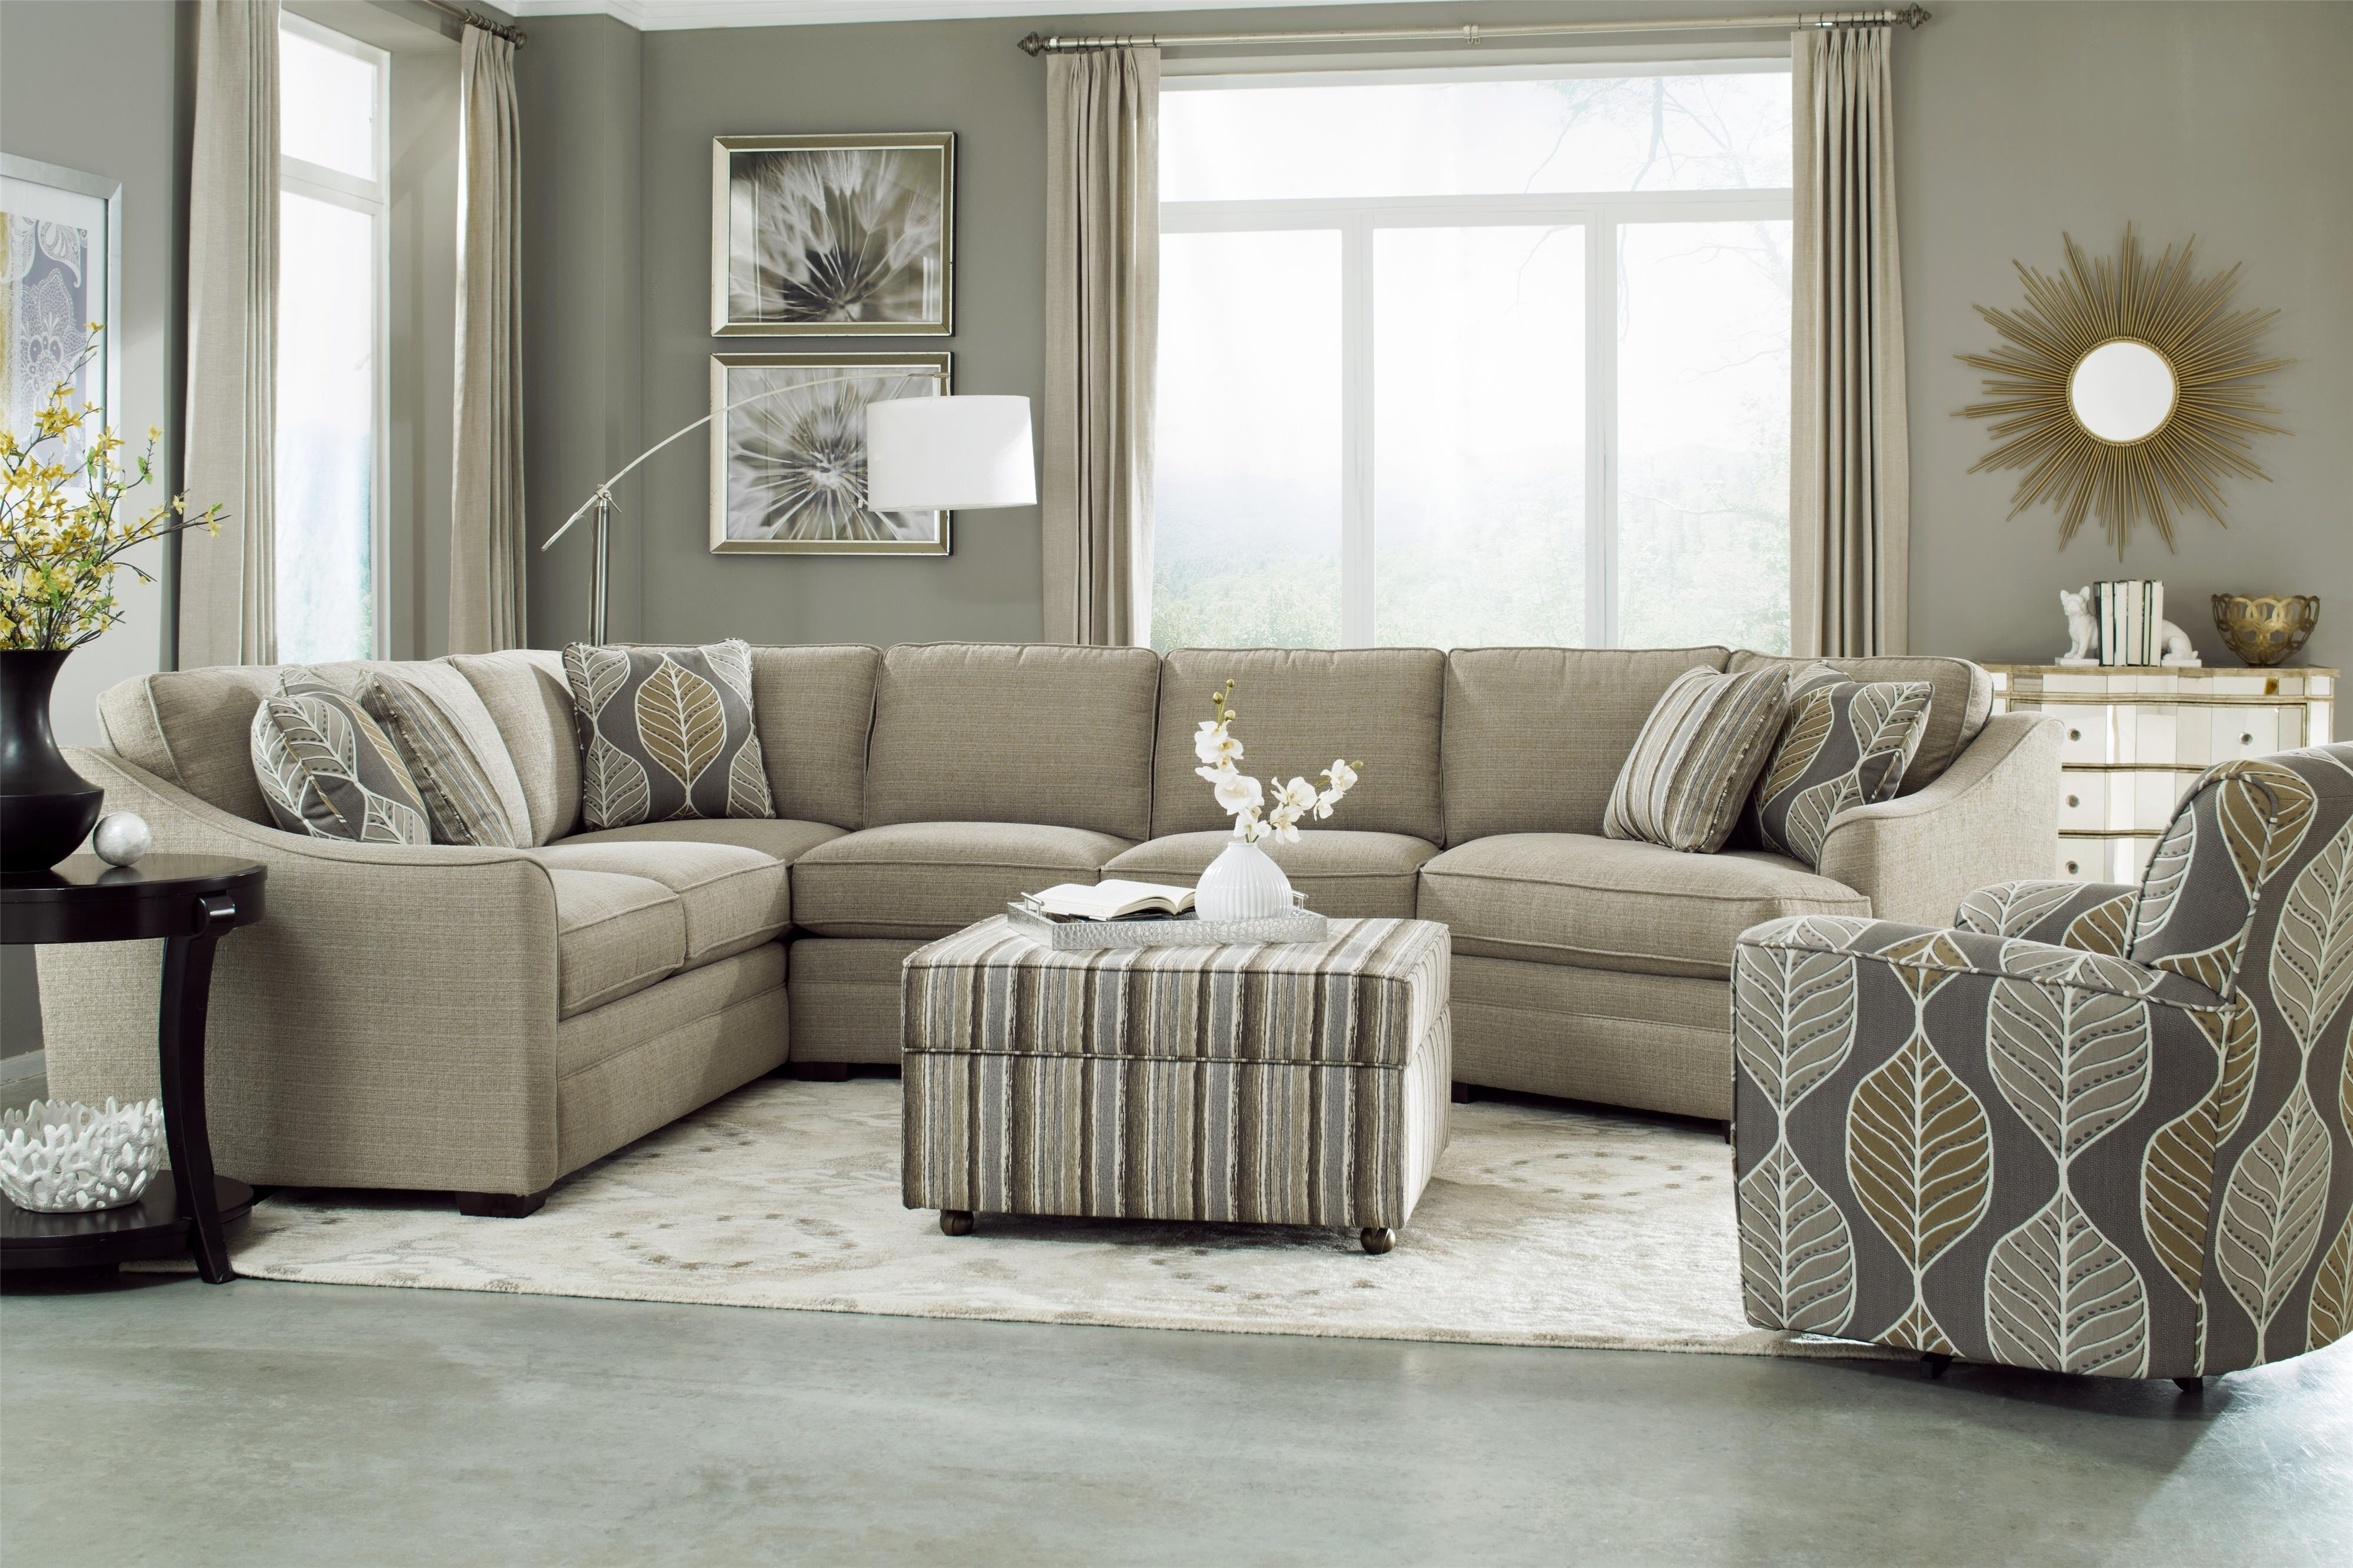 Appealing Craftsman Sectional Sofa In Craftmaster F9 Custom Intended For Craftsman Sectional Sofas (Image 1 of 10)